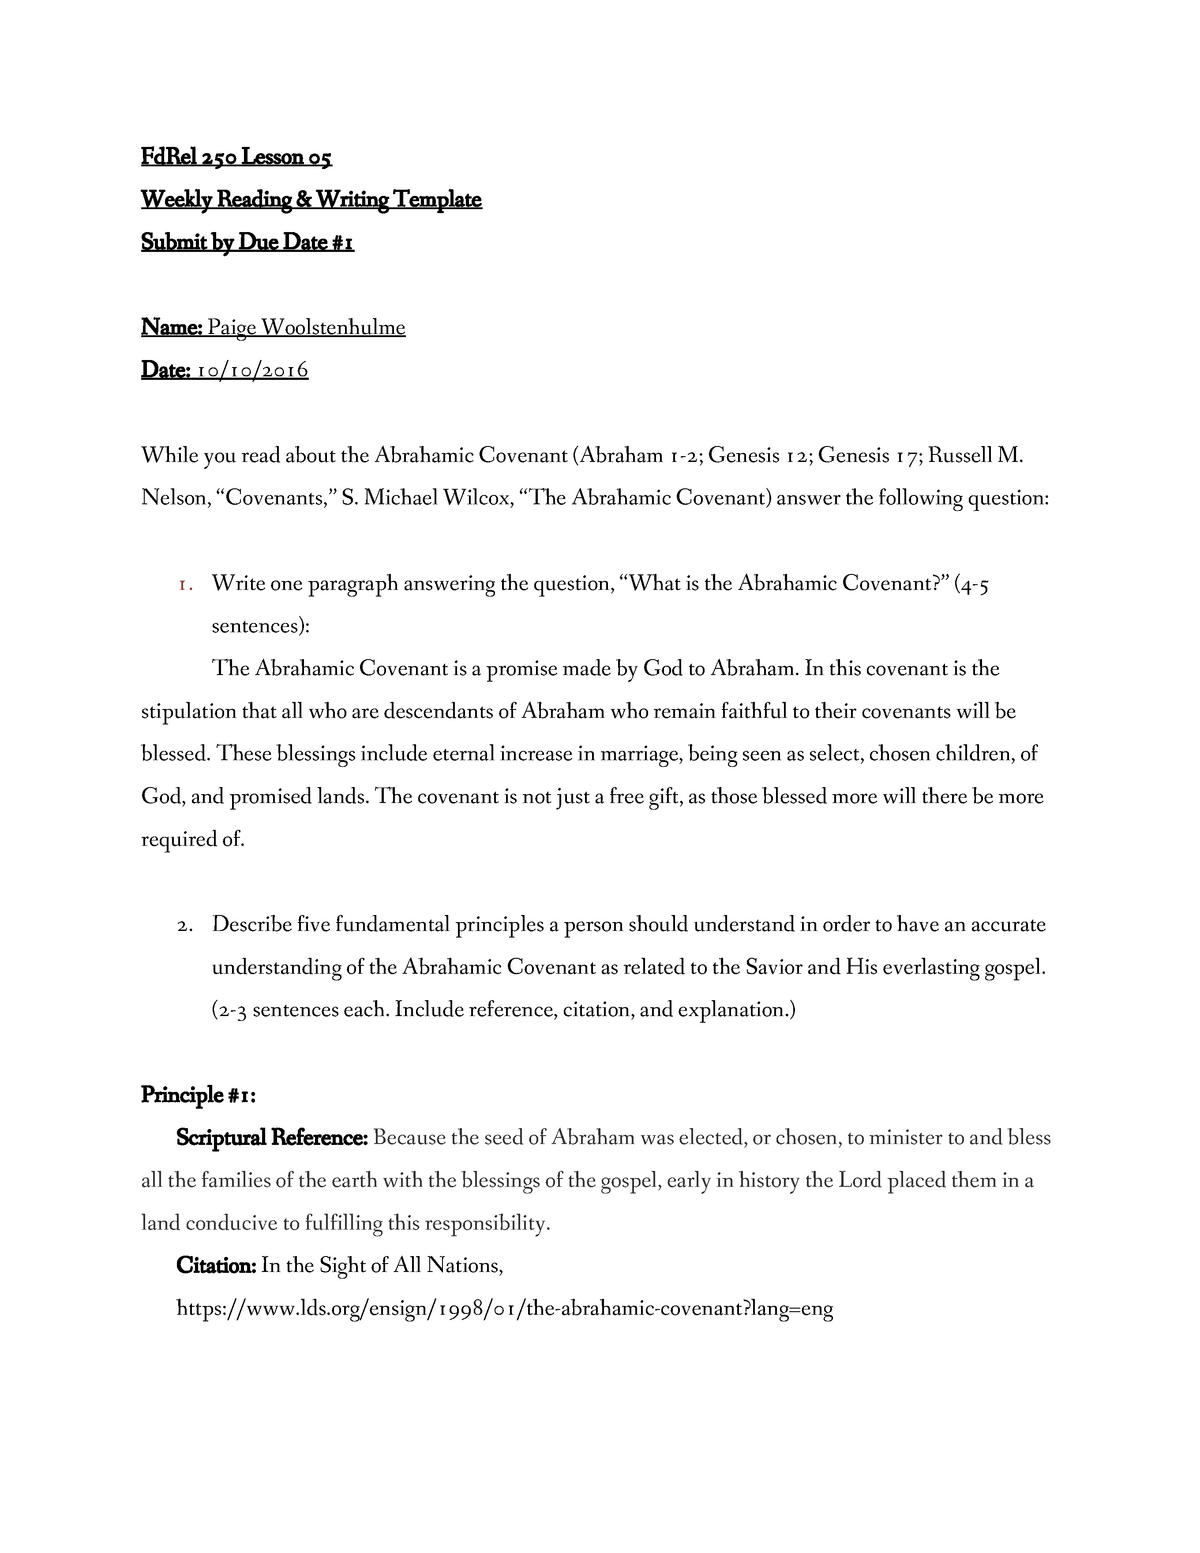 Fd Rel 250 Lesson 05 Writing Template - FDREL250 - BYU–Idaho